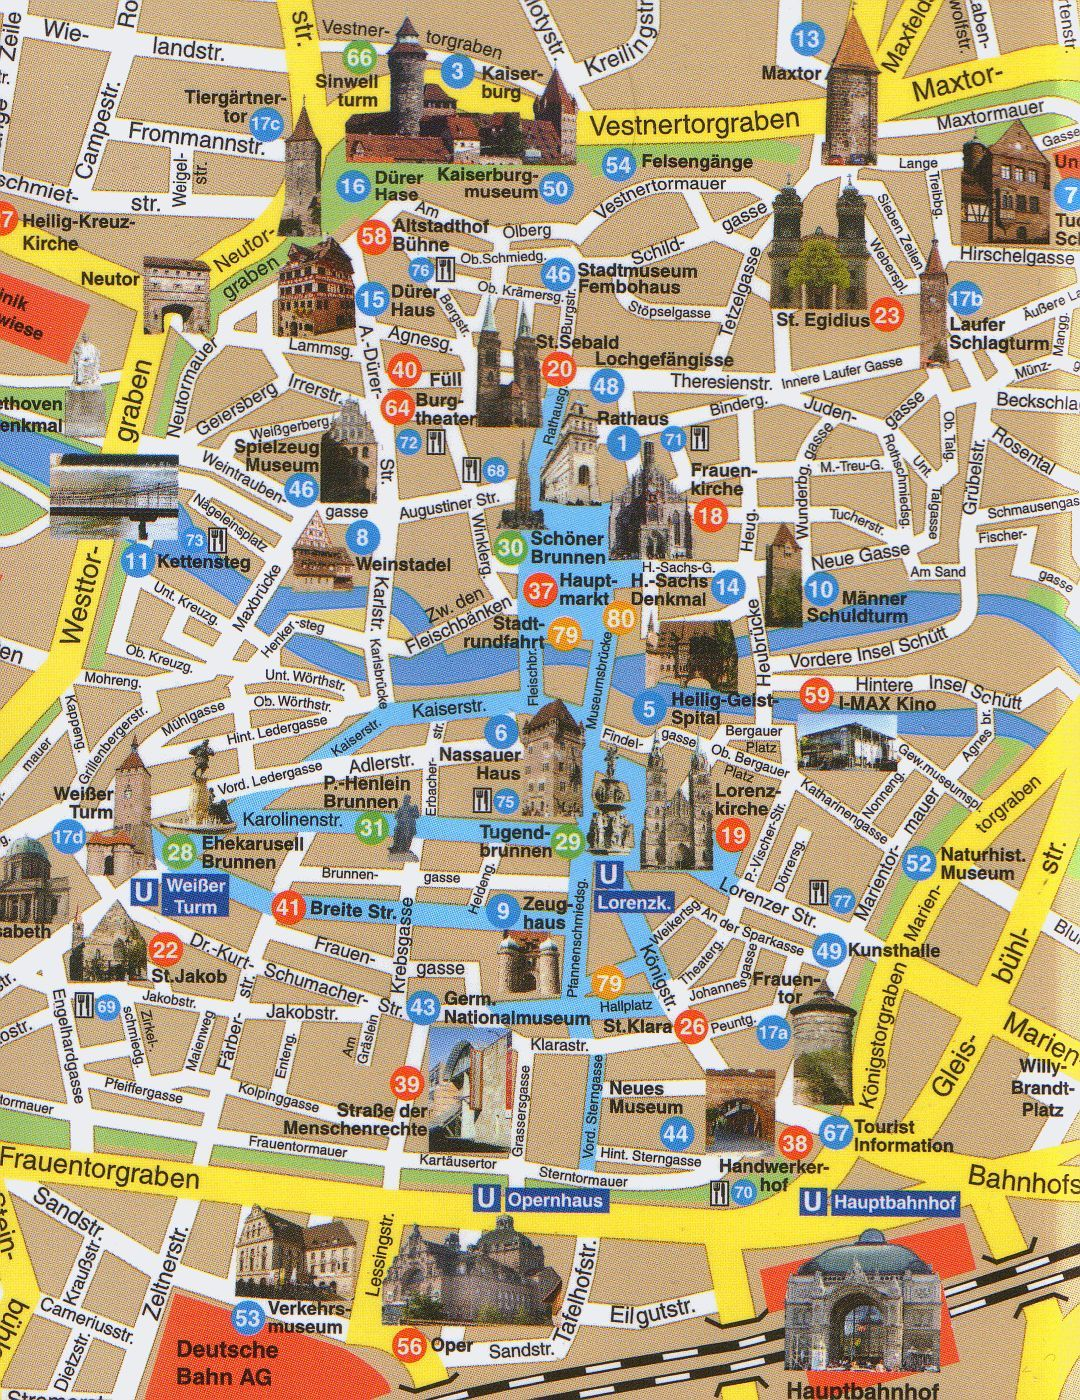 1000 images about Travel Germany FrankfurtBavariaMunich on – Munich City Map Tourist